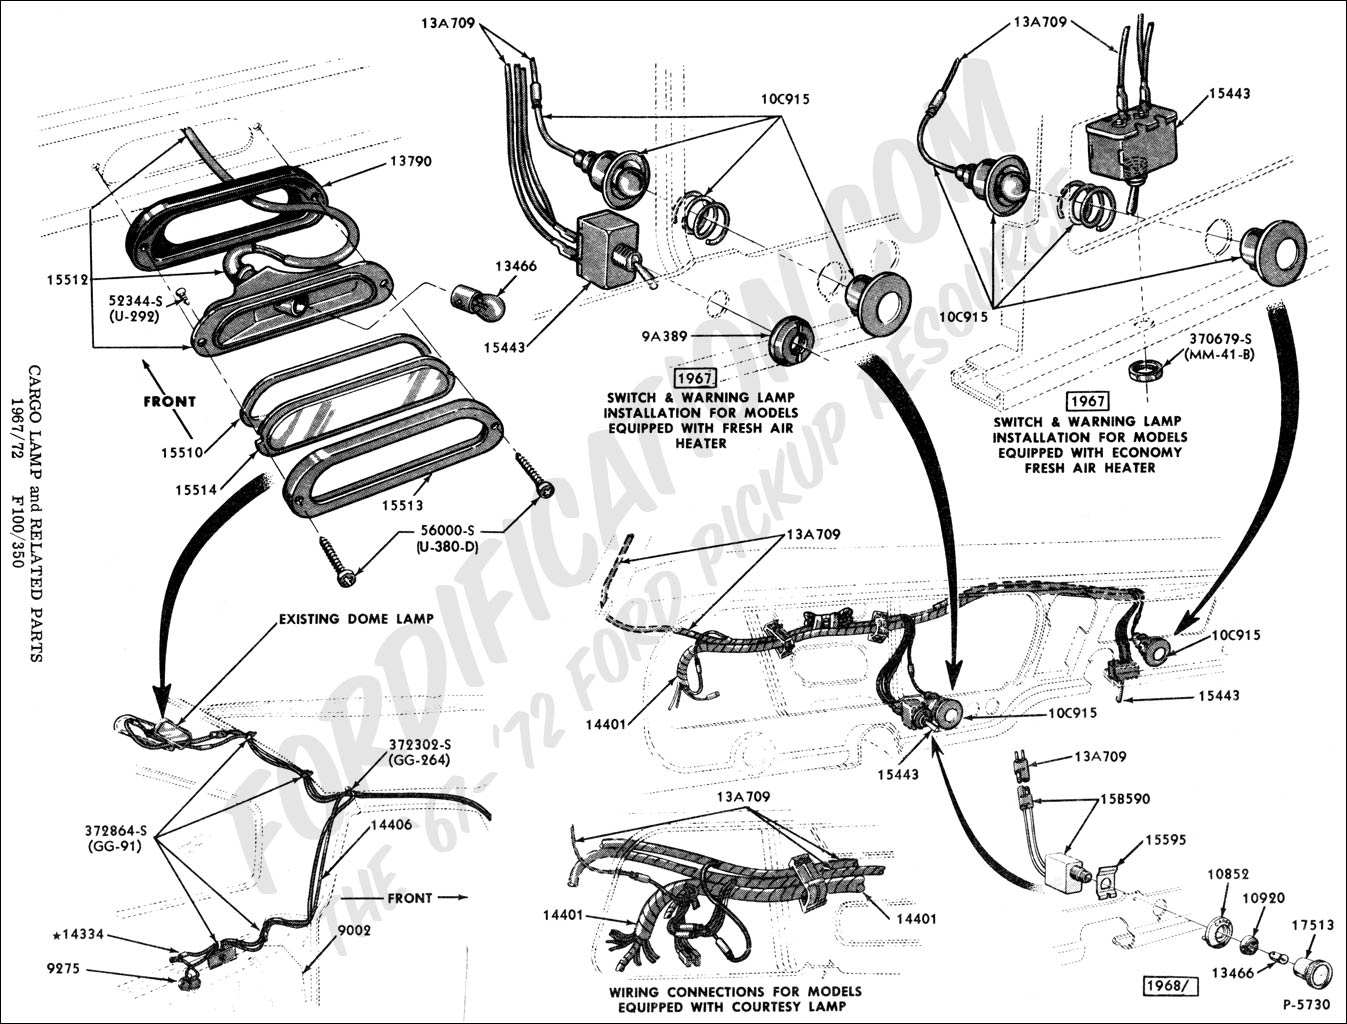 Ford Truck Technical Drawings And Schematics Section I 1999 F150 Fuse Box Diagram 4 Wheel Drive Electrical Wiring